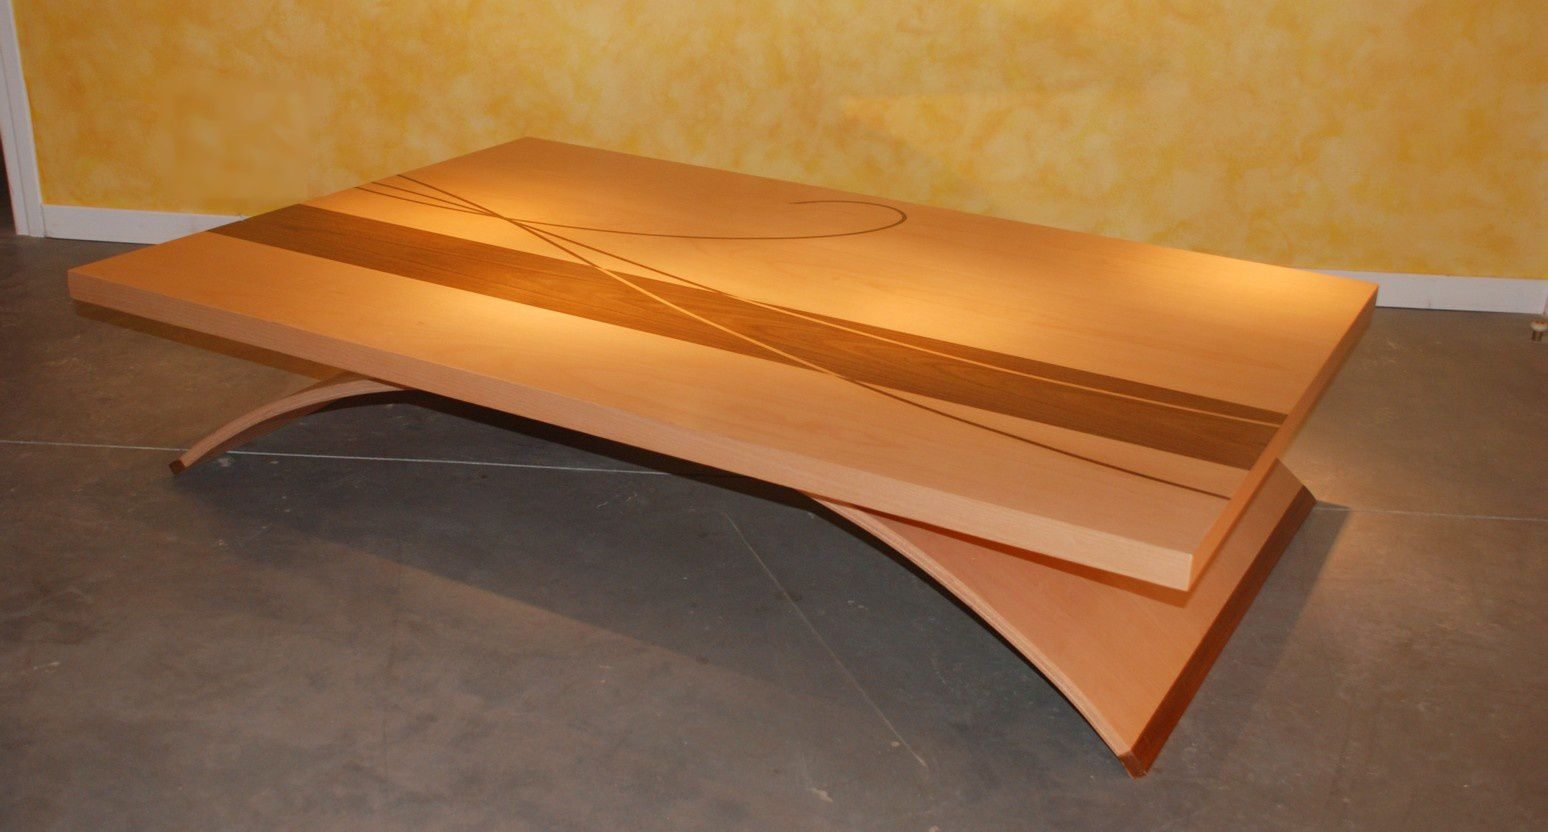 Table Basse Design Arc Atelier POURQUOI PAS Mobilier